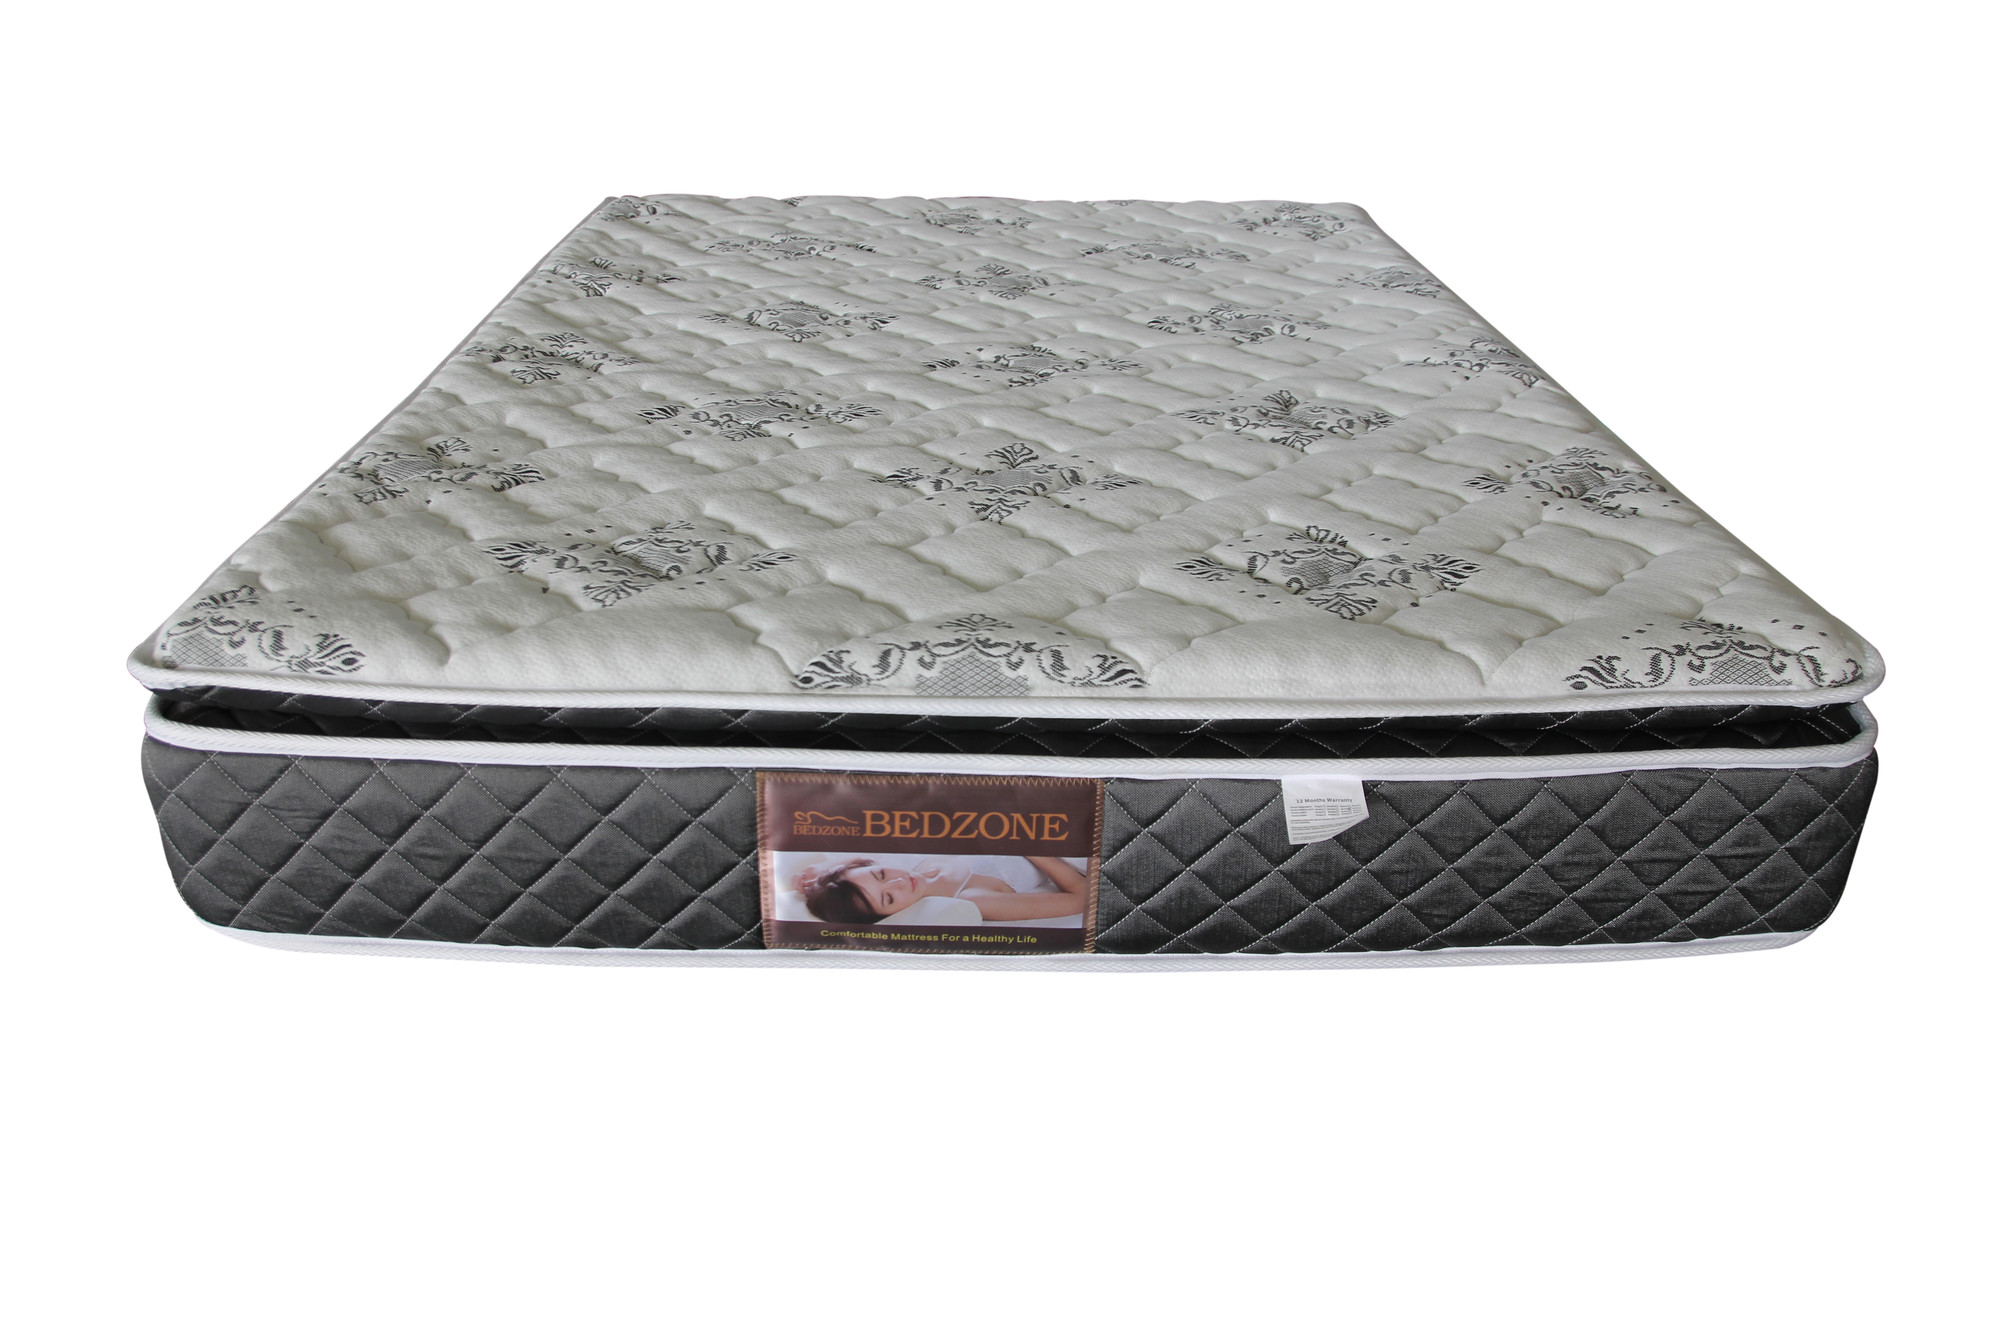 canada king single topper queen p size info beautyrest mattress top superblackbird pillow cover